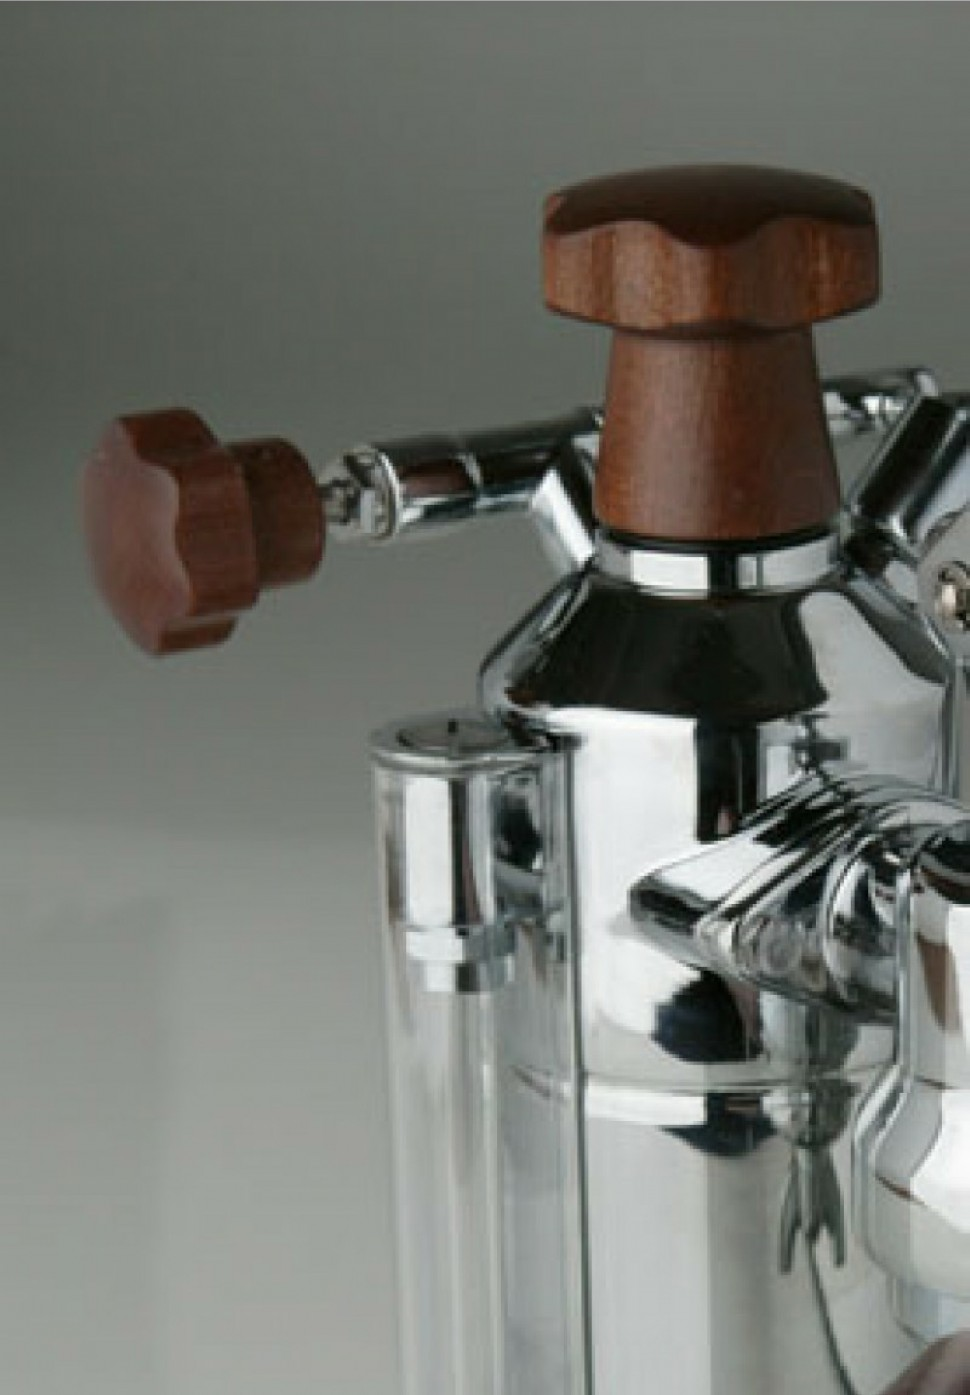 la pavoni europiccola elh lever espresso machine silver wood elements genuine ebay. Black Bedroom Furniture Sets. Home Design Ideas